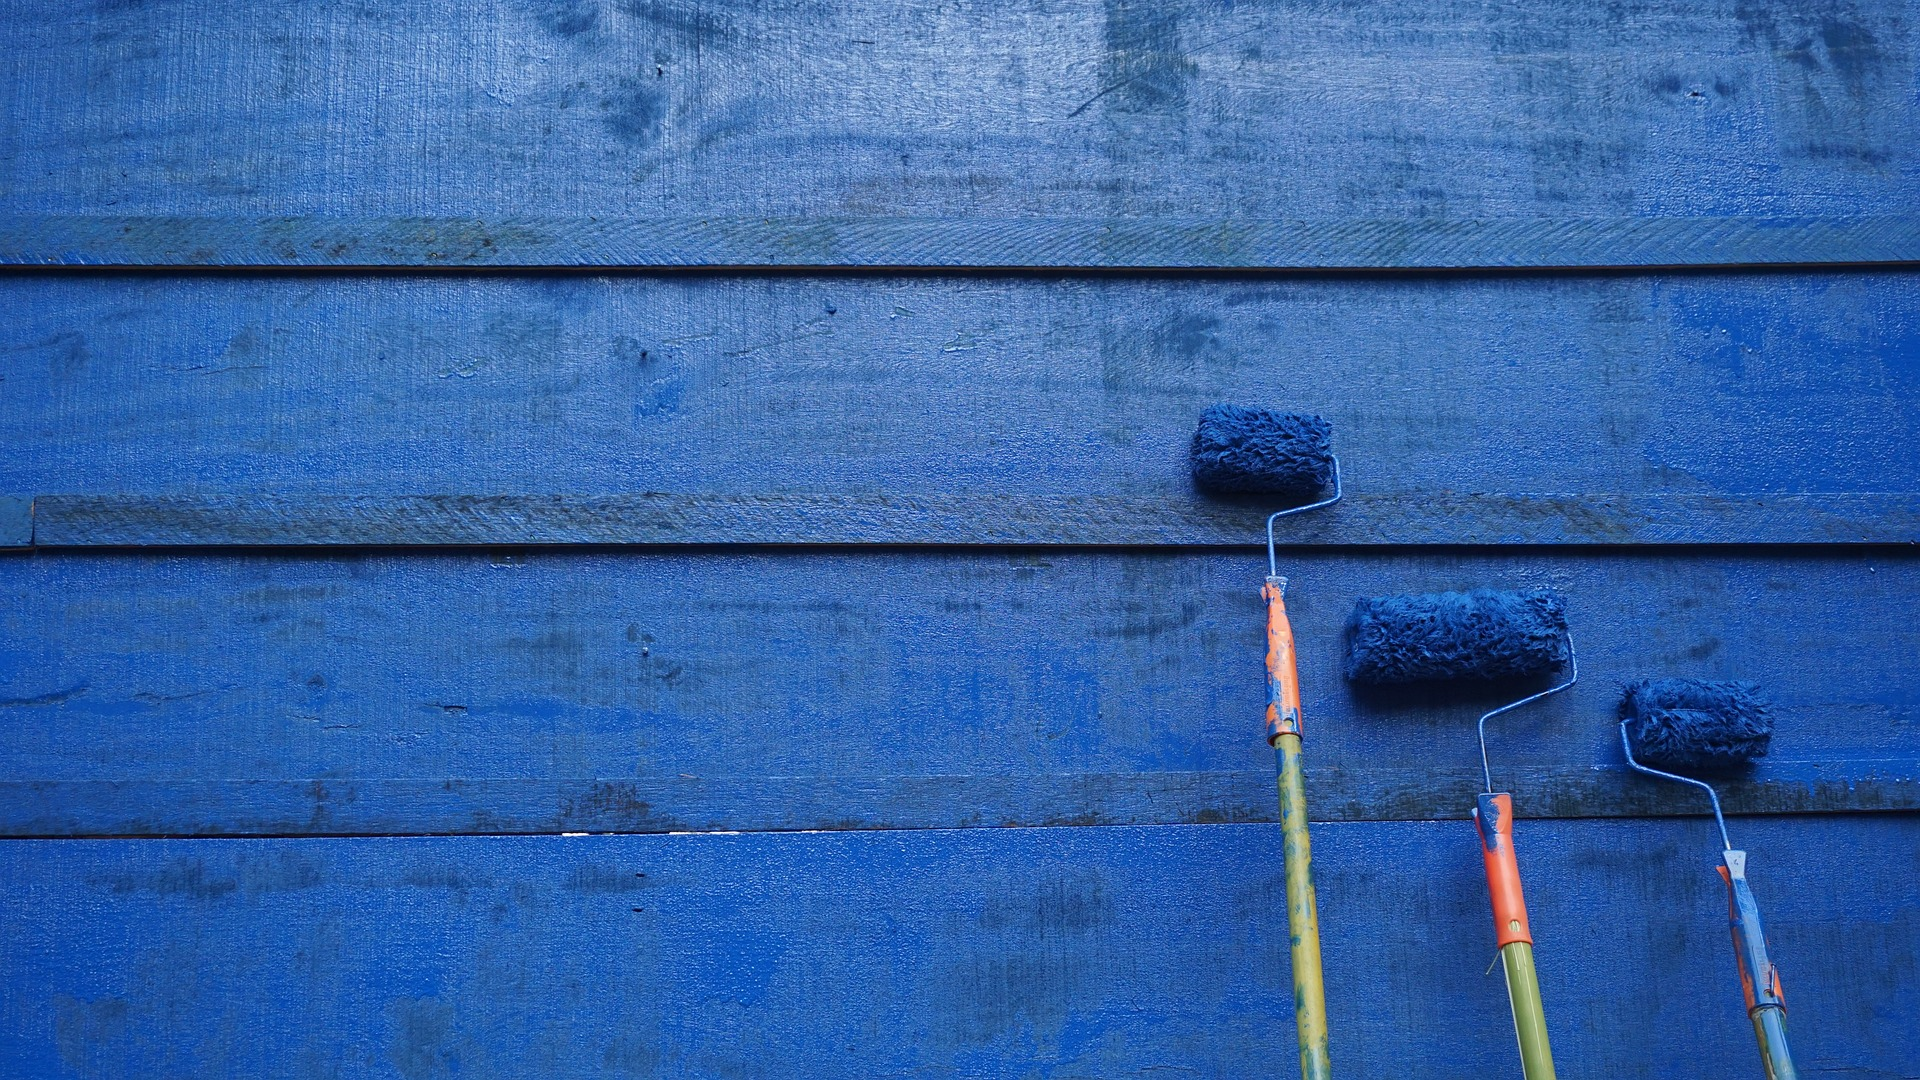 Wall painting brushes